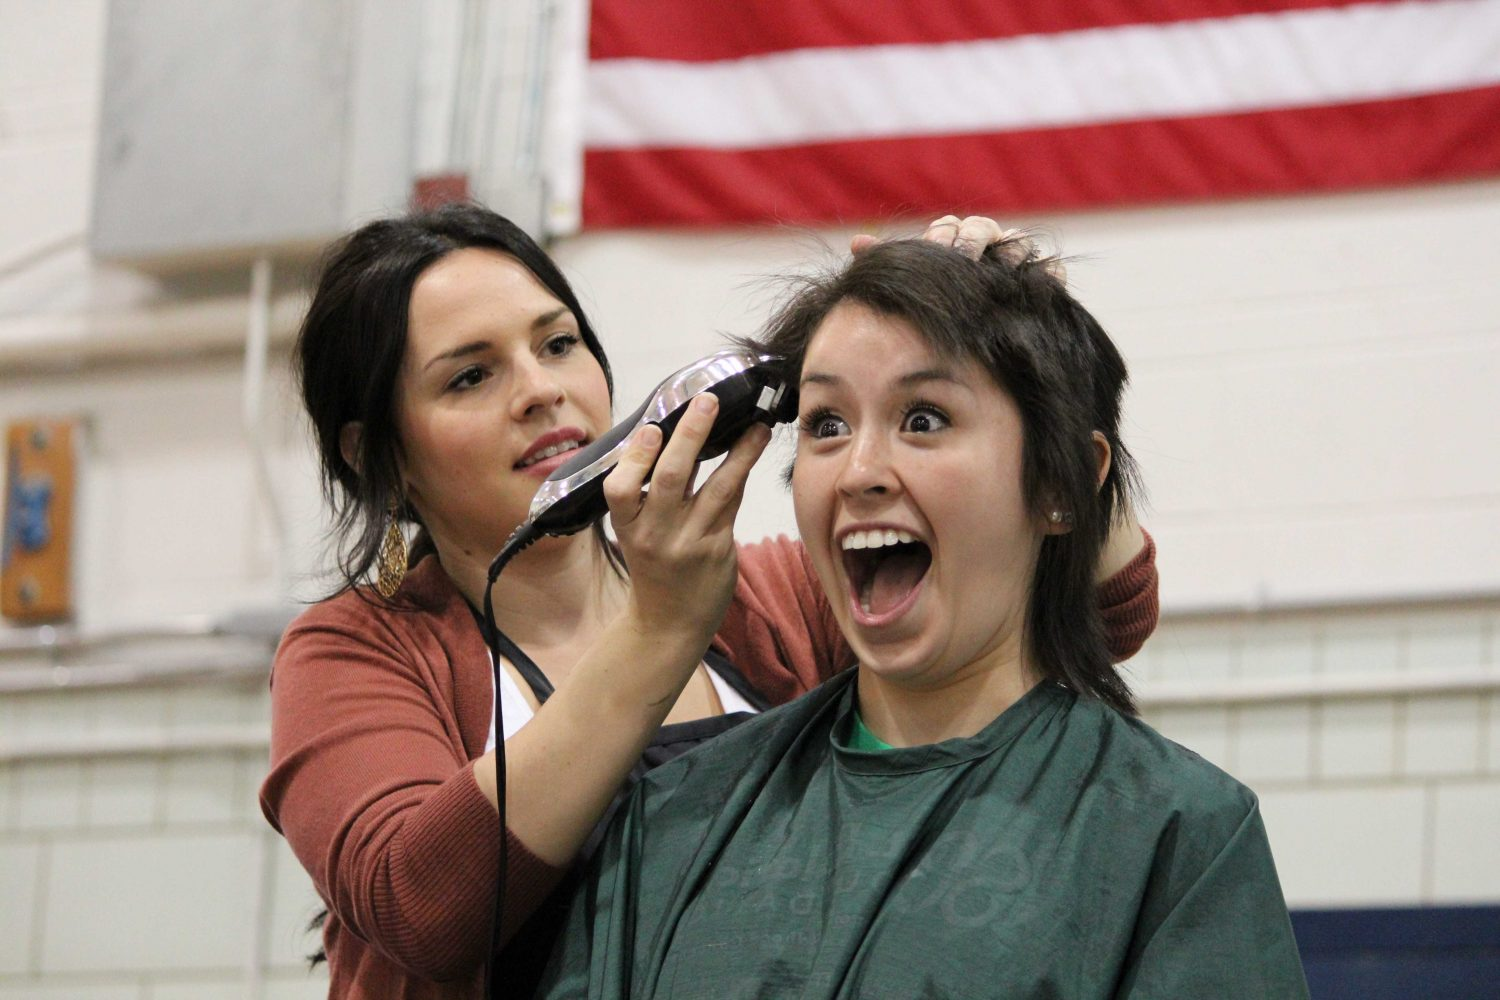 Sophomore+Nathalie+Solorio+getting+her+hair+buzzed+off+at+the+St.+Baldrick%27s+event+for+childhood+cancer+research